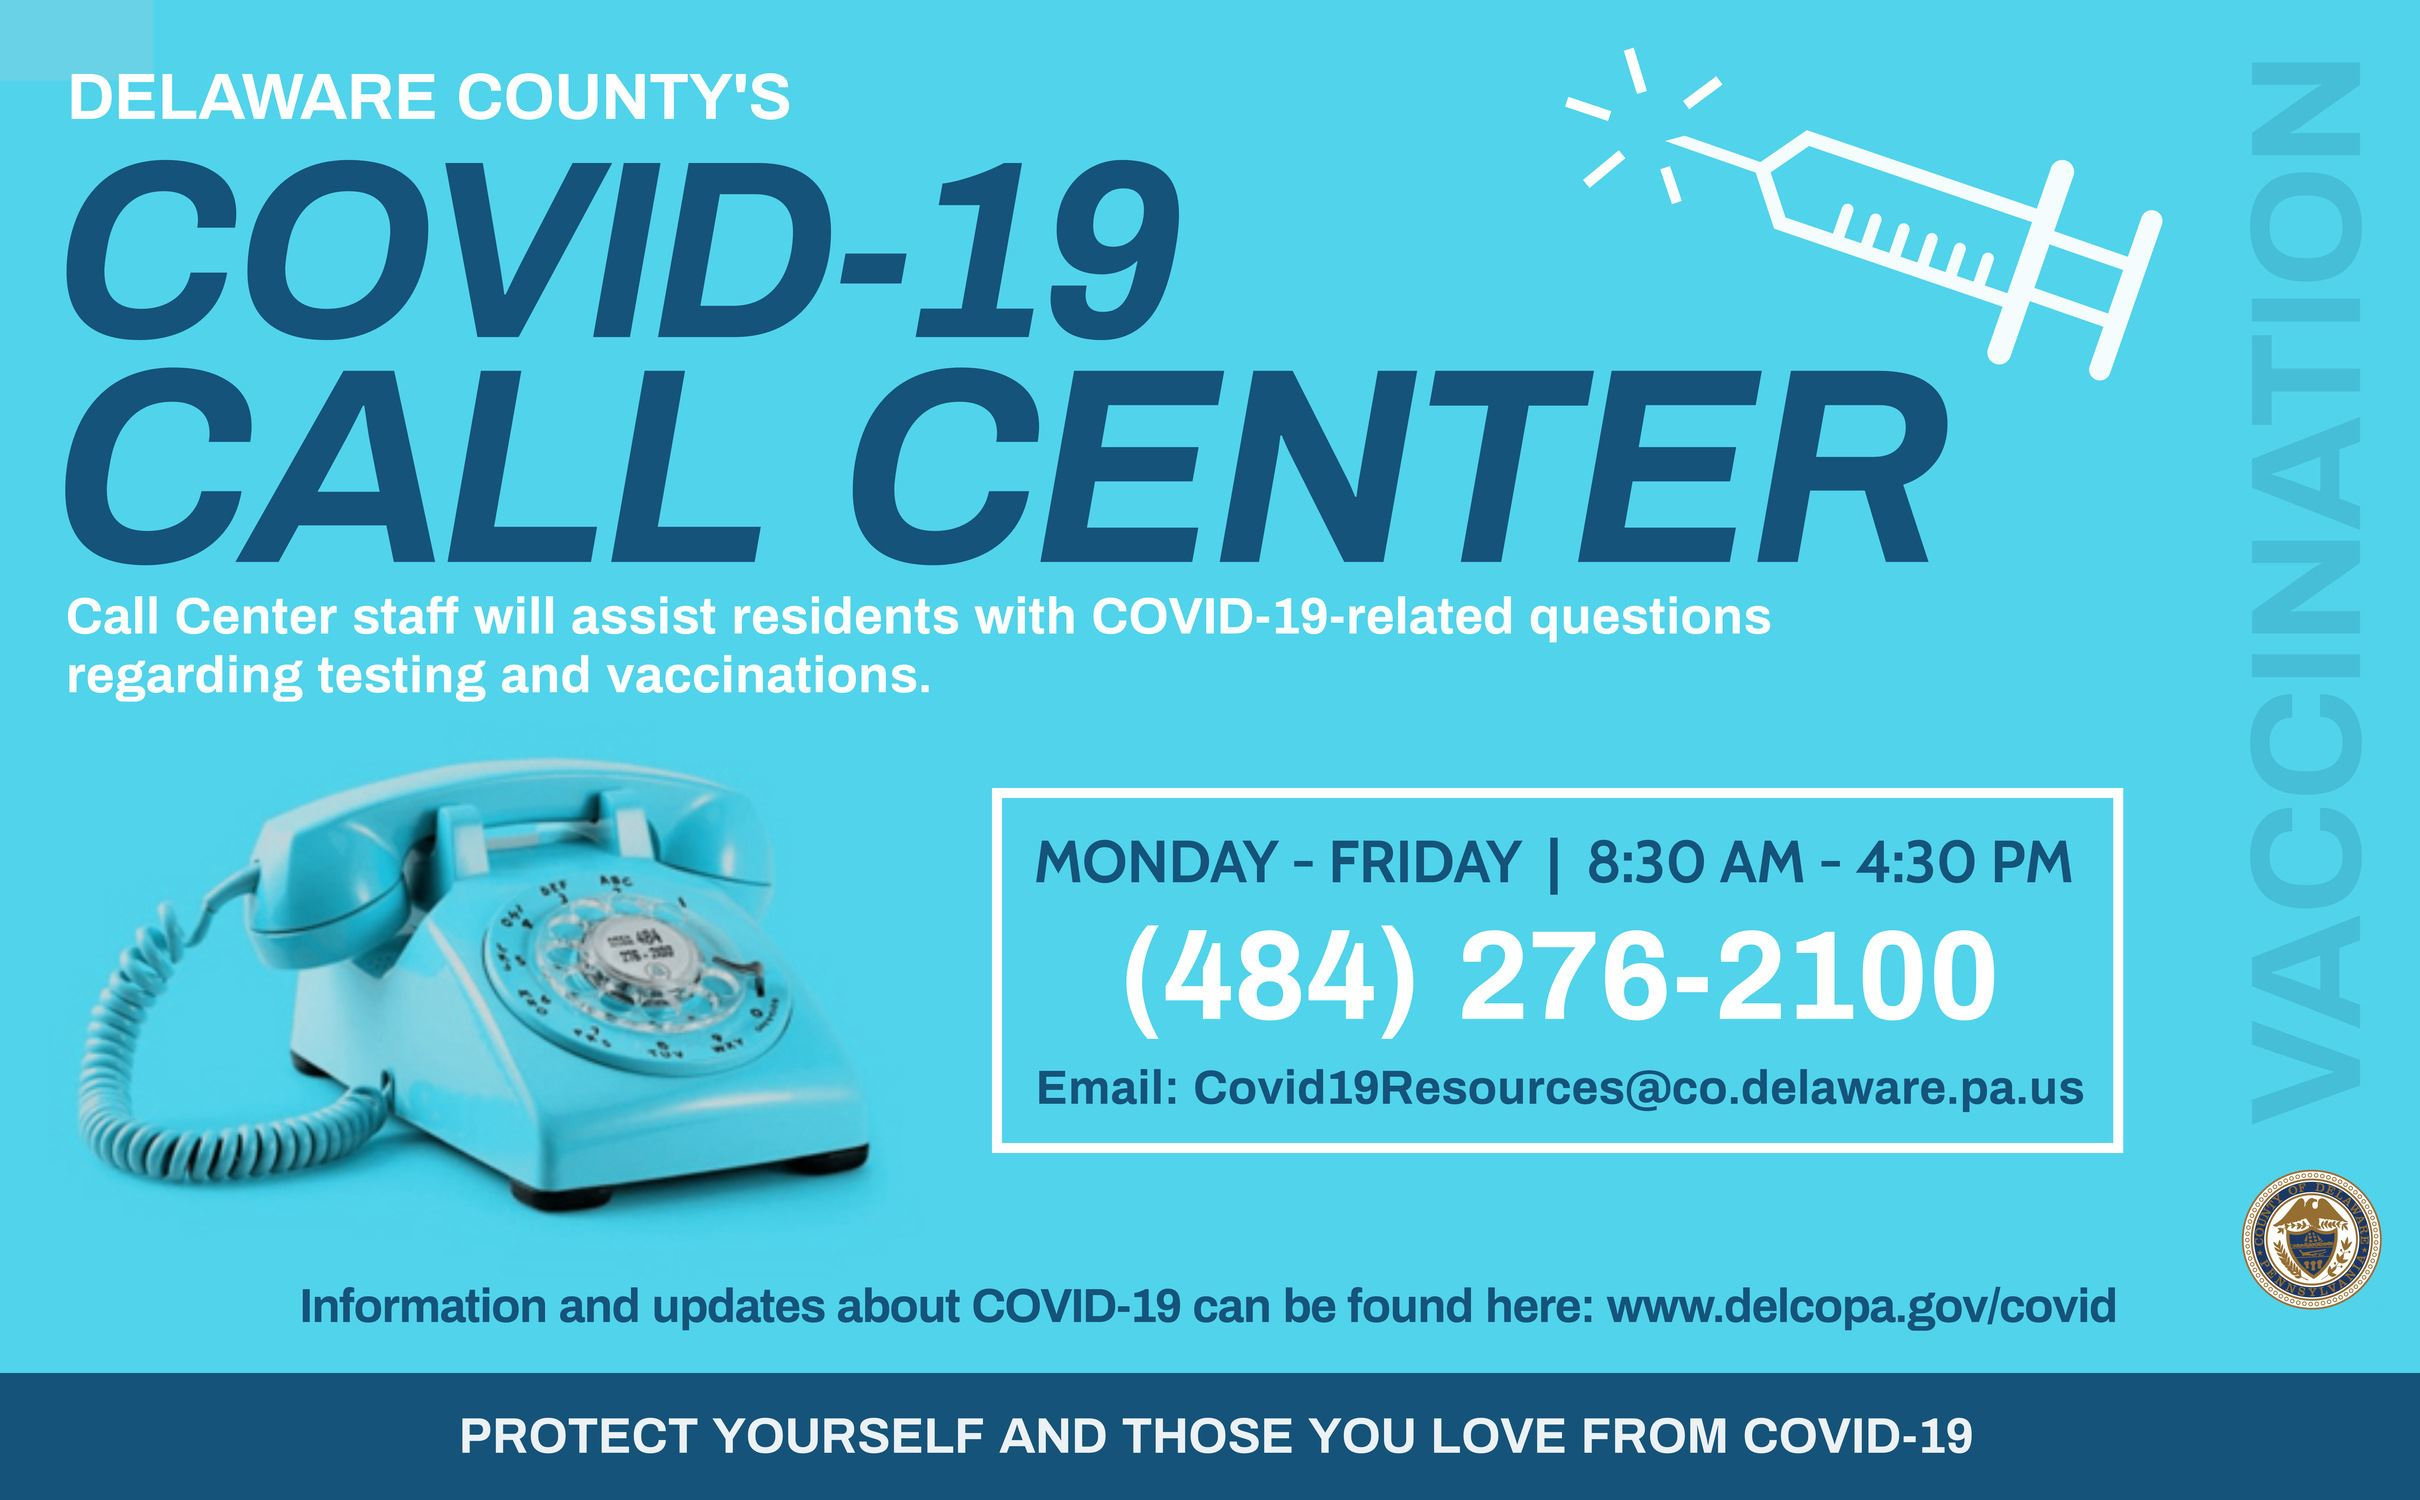 Covid-19 Call Center Flyer English (High Res)